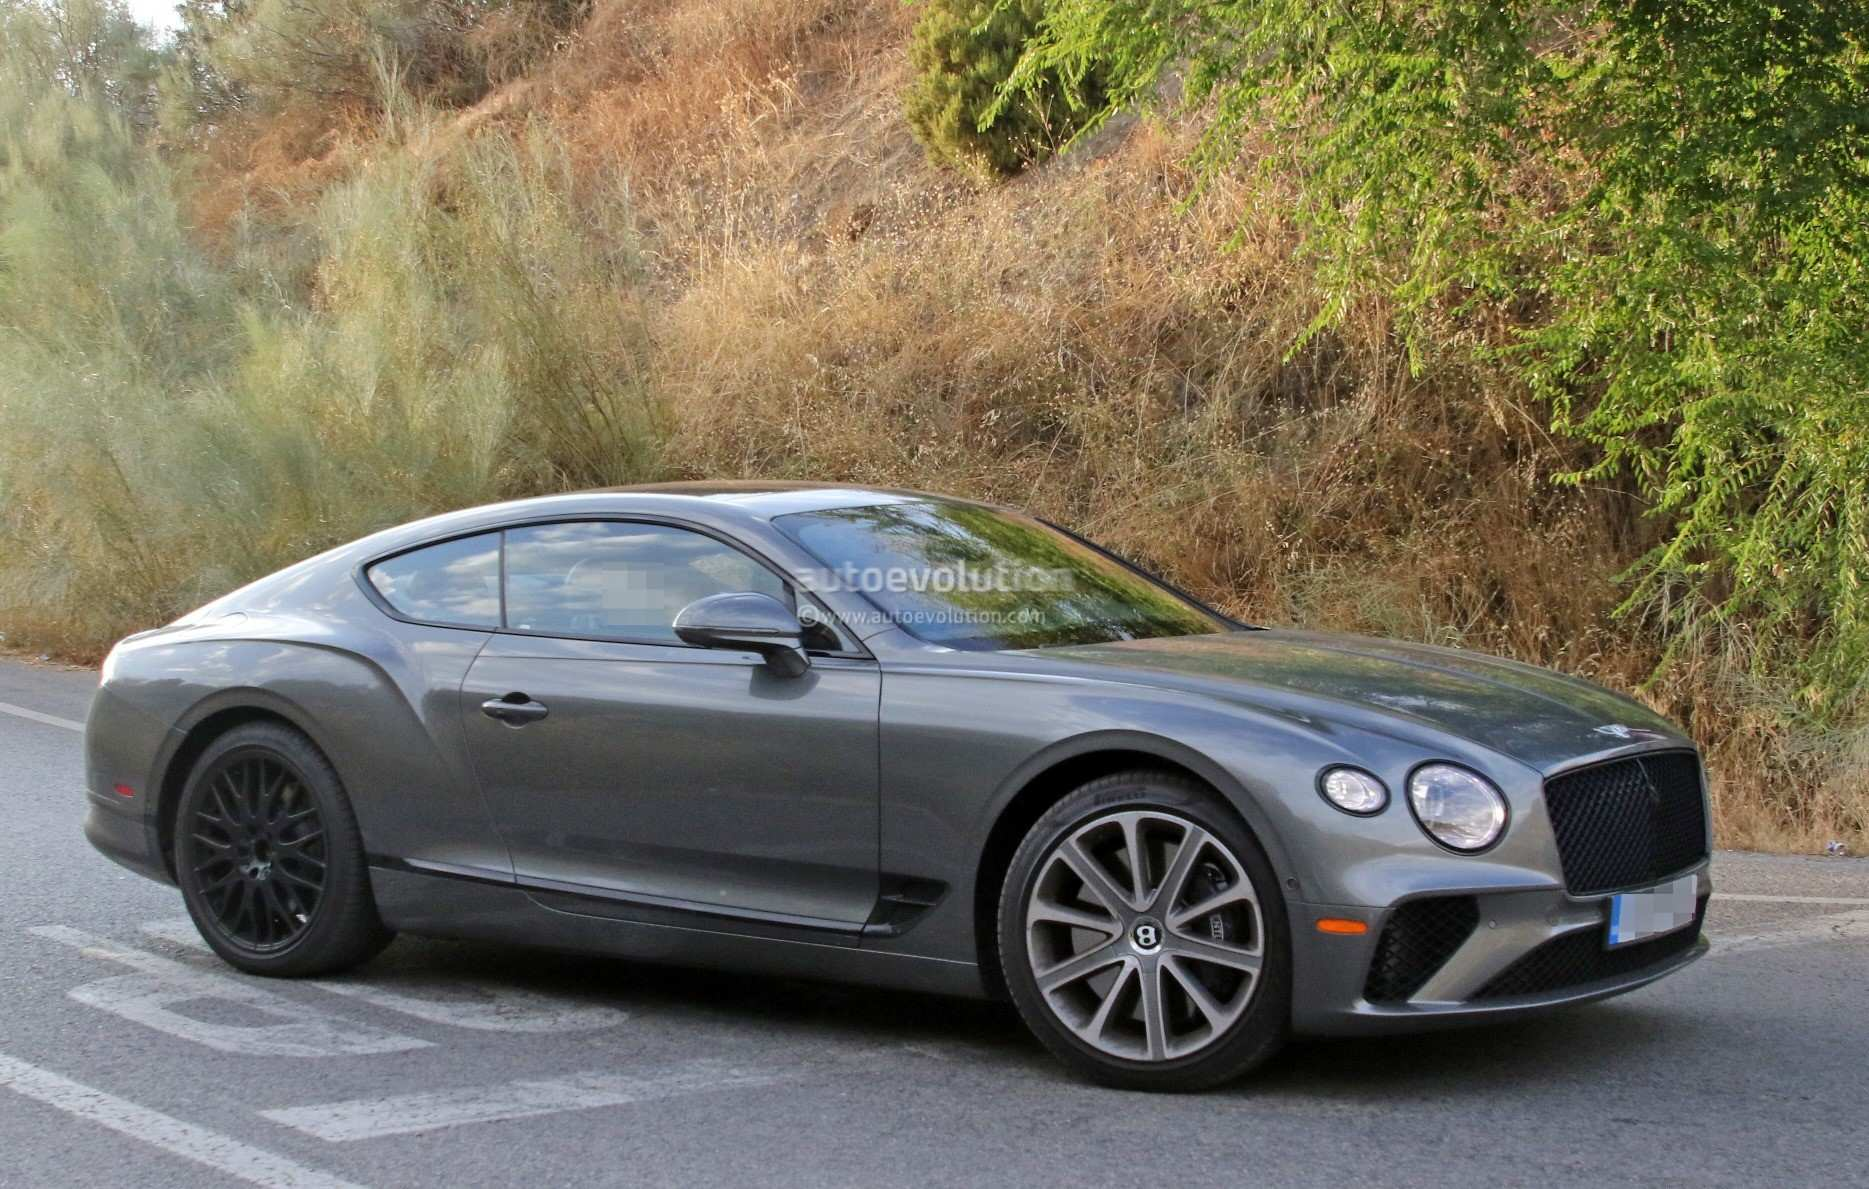 80 New 2019 Bentley Continental Gtc Wallpaper for 2019 Bentley Continental Gtc